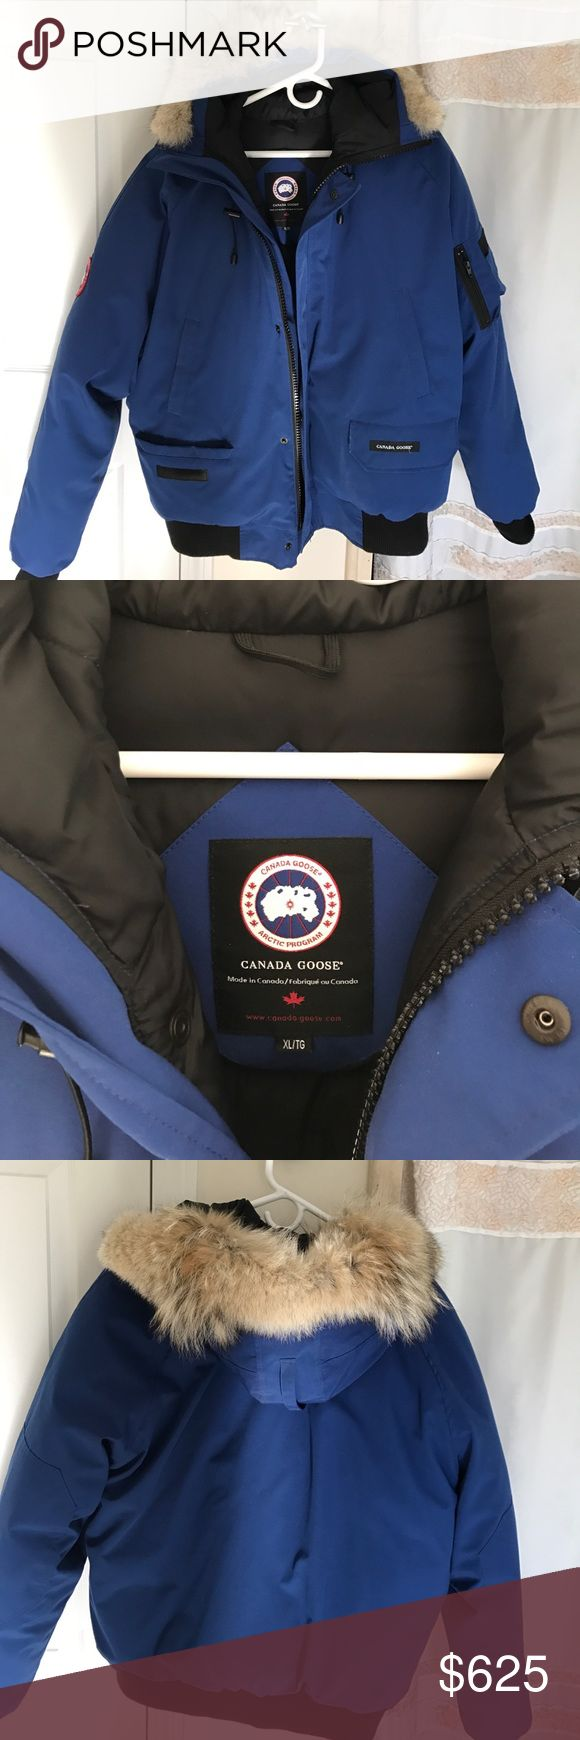 Canada goose authentic jacket This beautiful winter men's jacket is a must have! Super worm. In outstanding condition, only used twice. Canada Goose Jackets & Coats Puffers